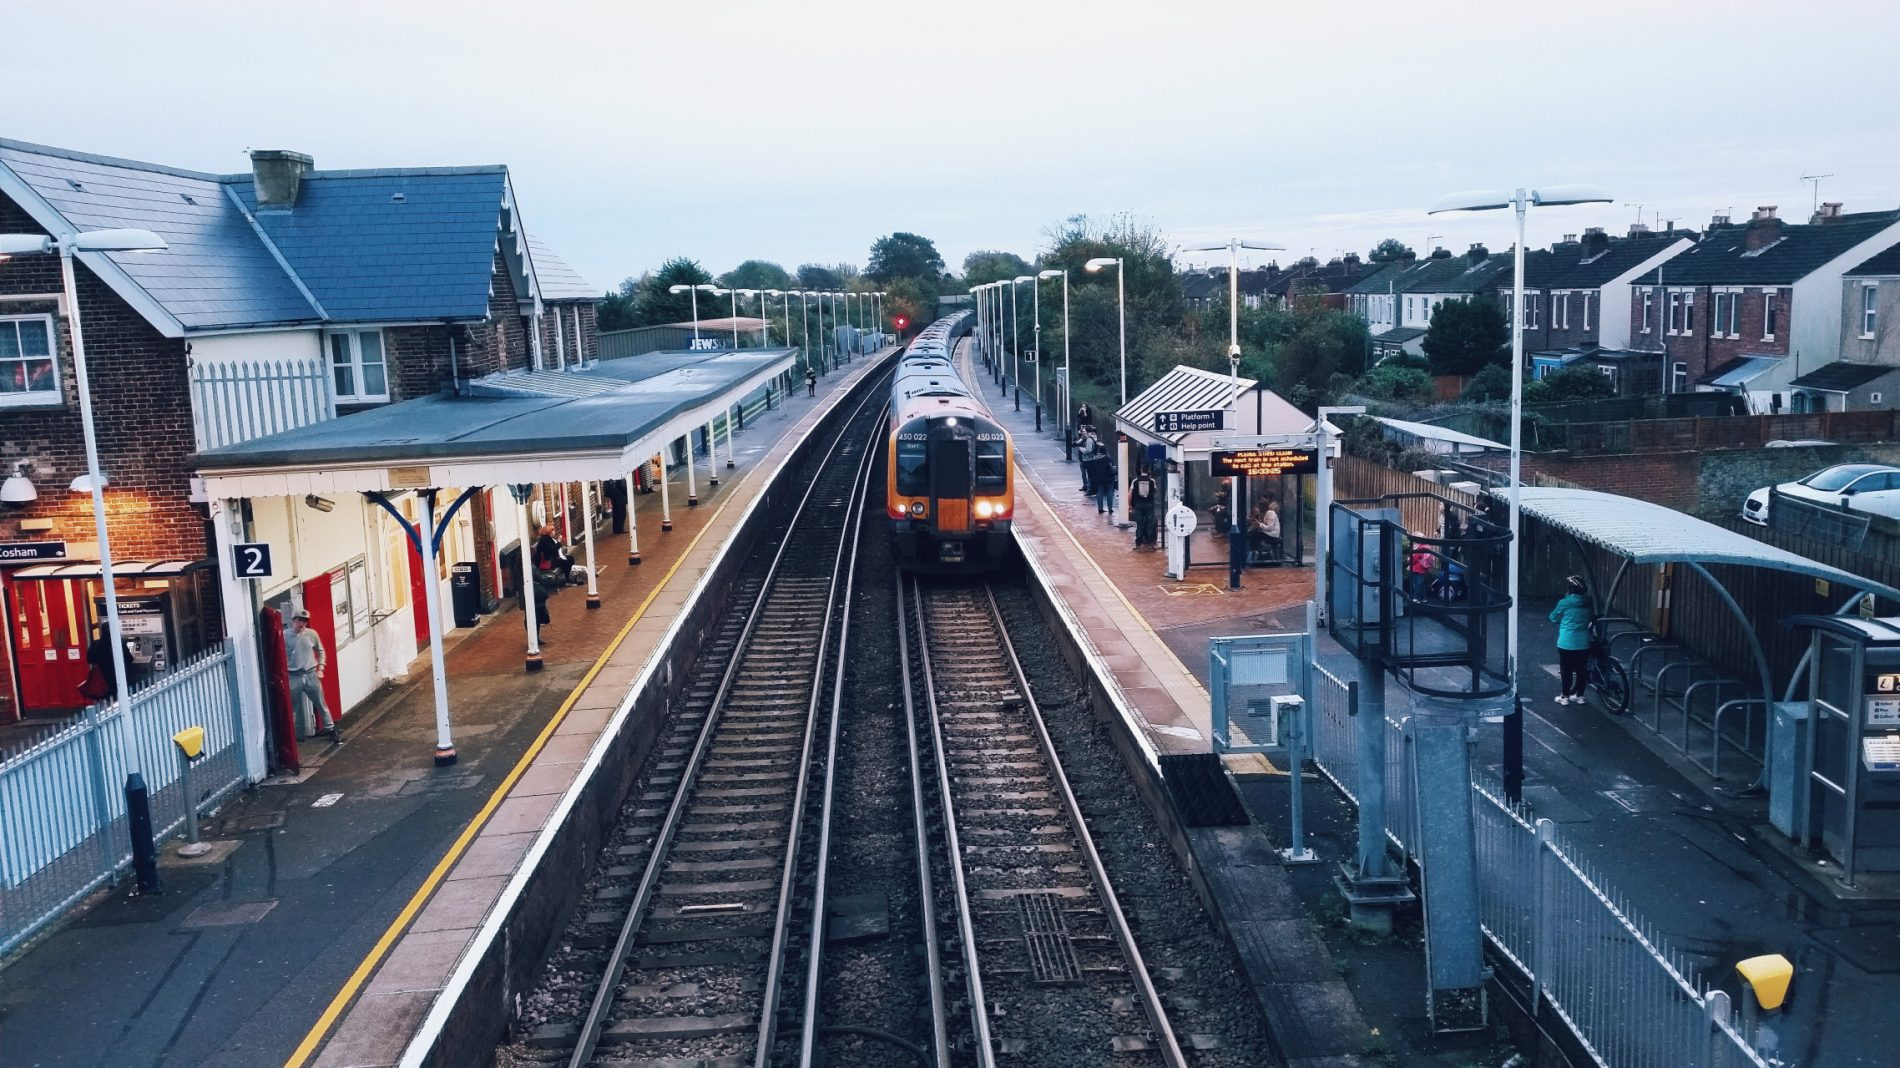 Train-pulling-into-a-station